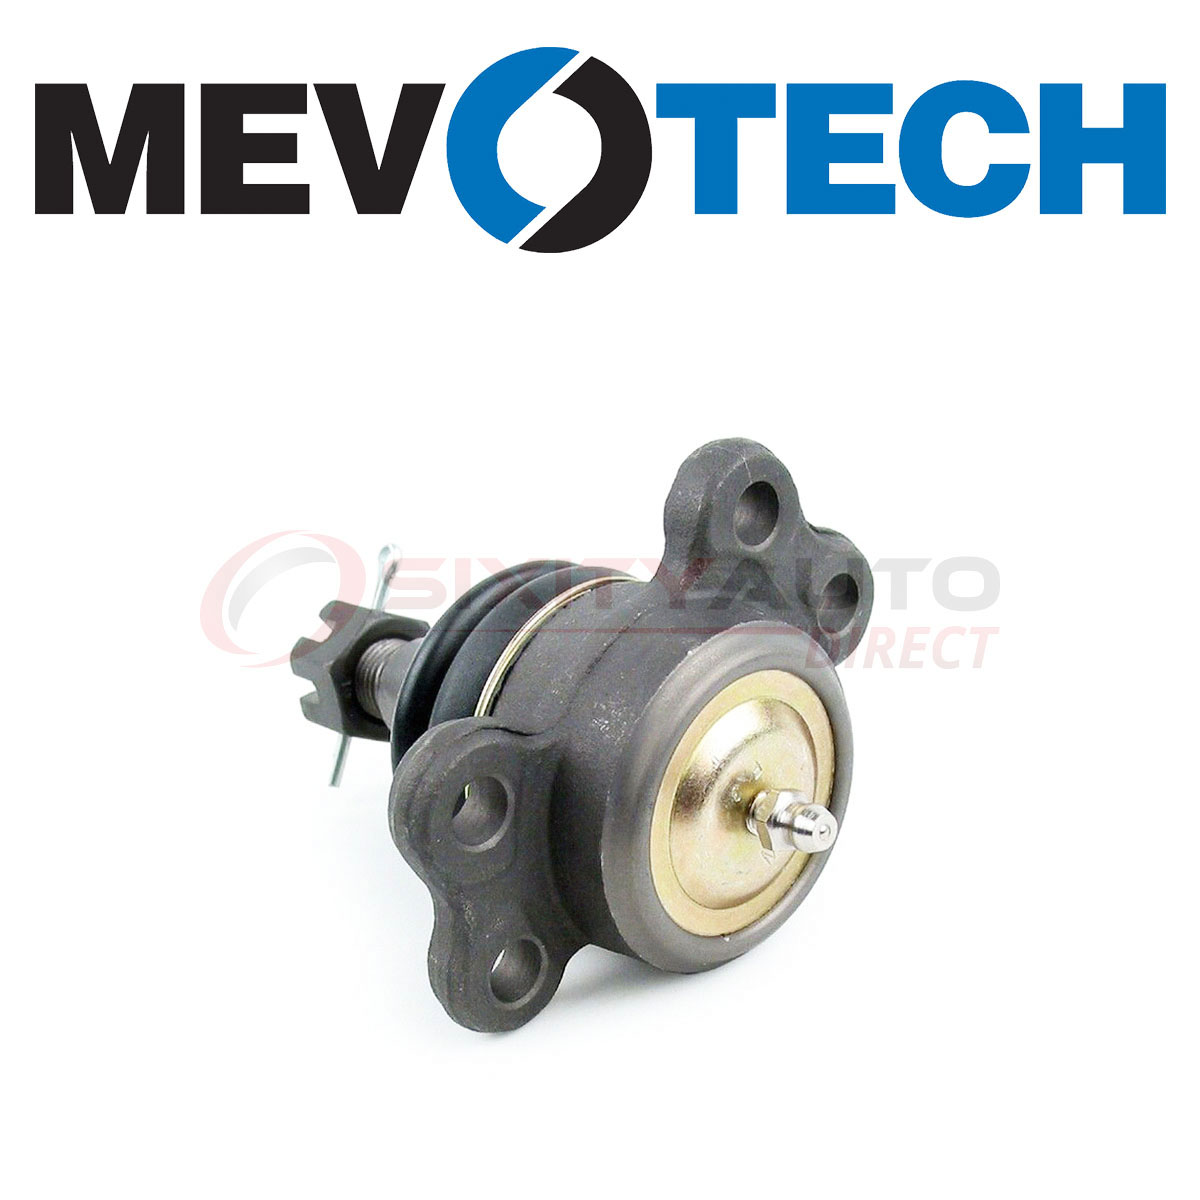 Mevotech Suspension Ball Joint For 1981